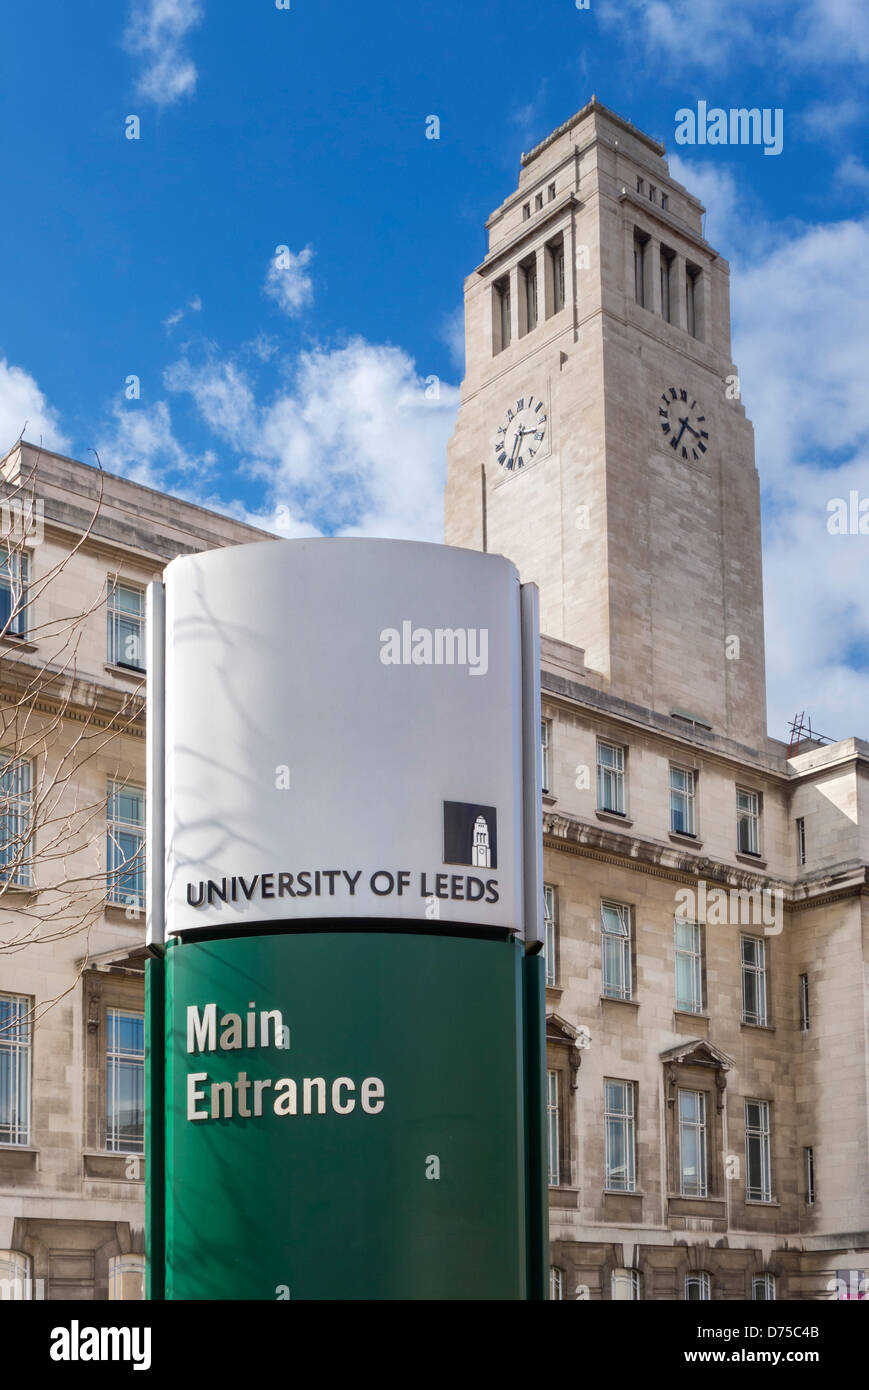 Sign outside the main entrance to the University of Leeds campus, Parkinson Building, Leeds, West Yorkshire, UK - Stock Image